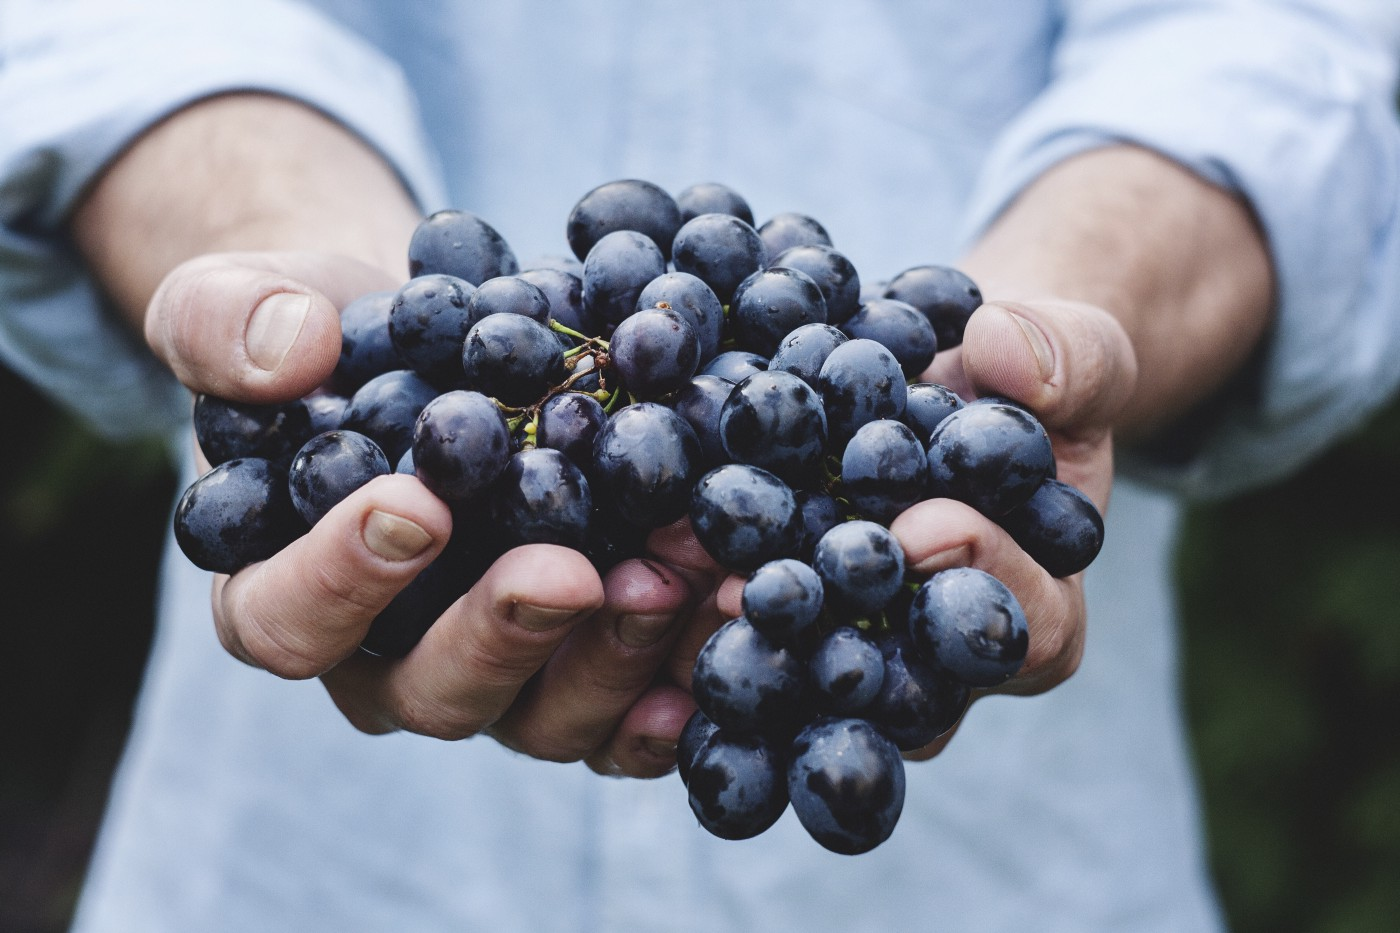 Hands holding bundle of grapes